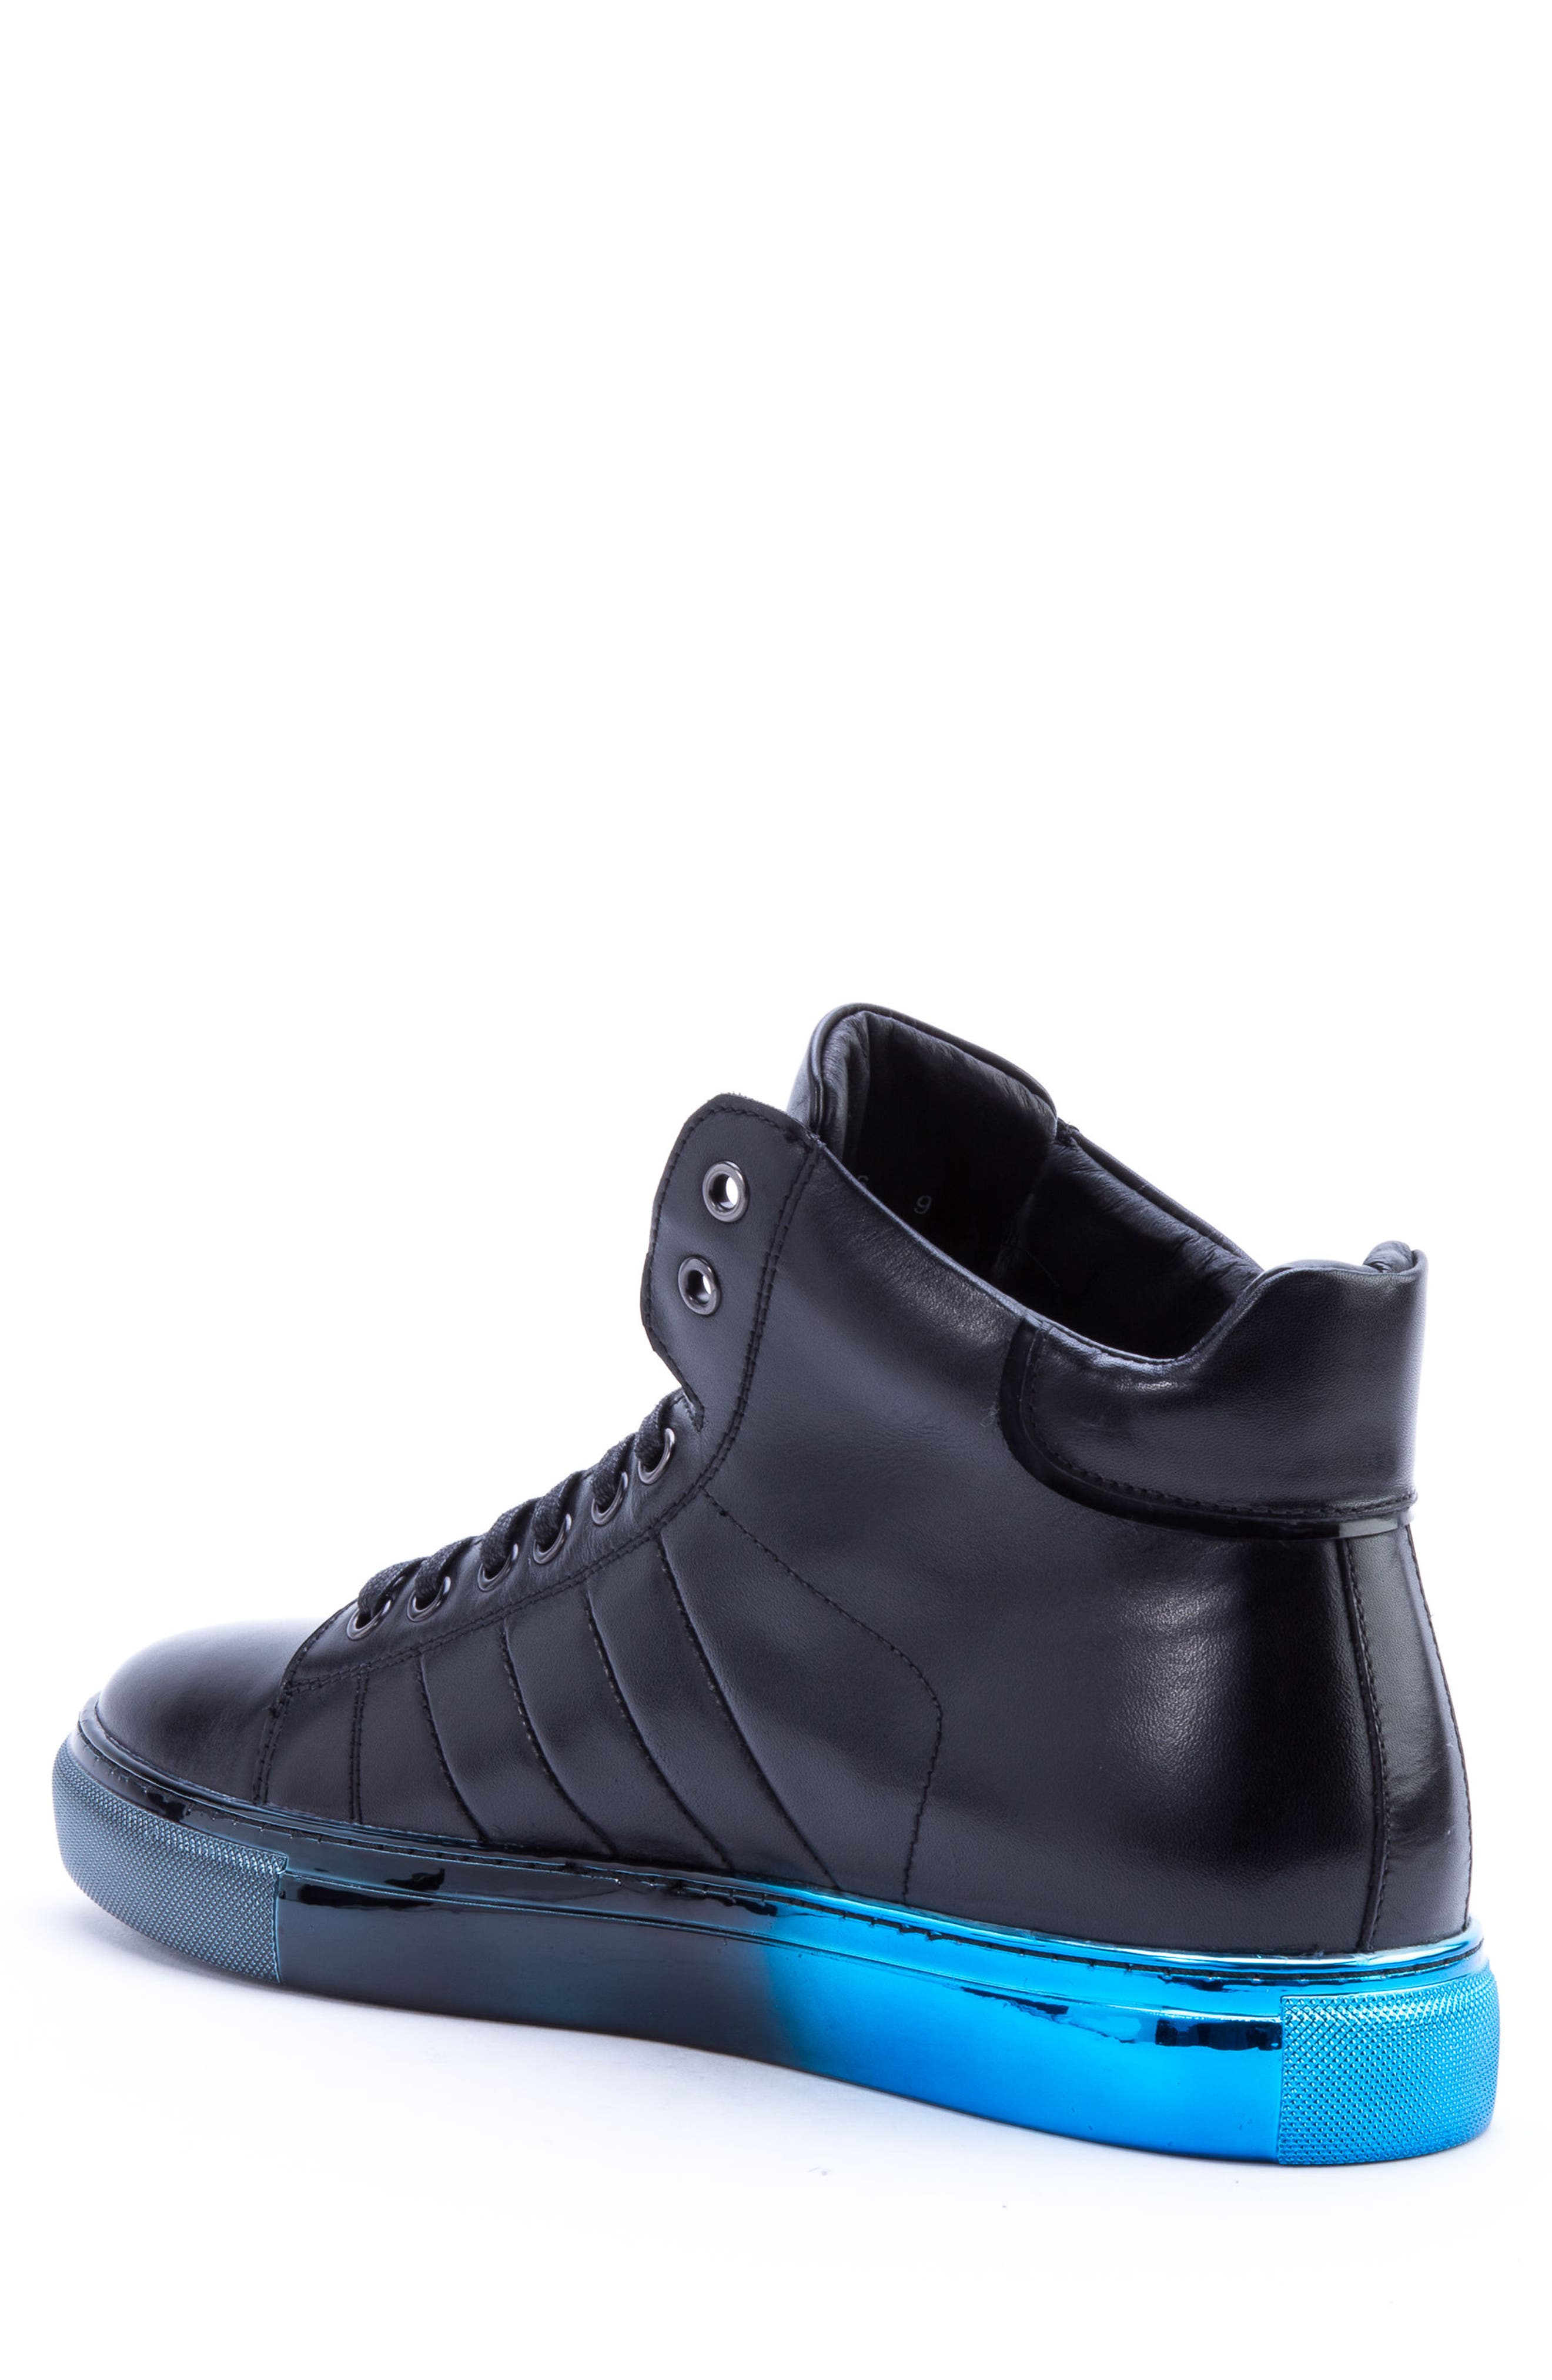 Hunter High Top Sneaker,                             Alternate thumbnail 2, color,                             NAVY LEATHER